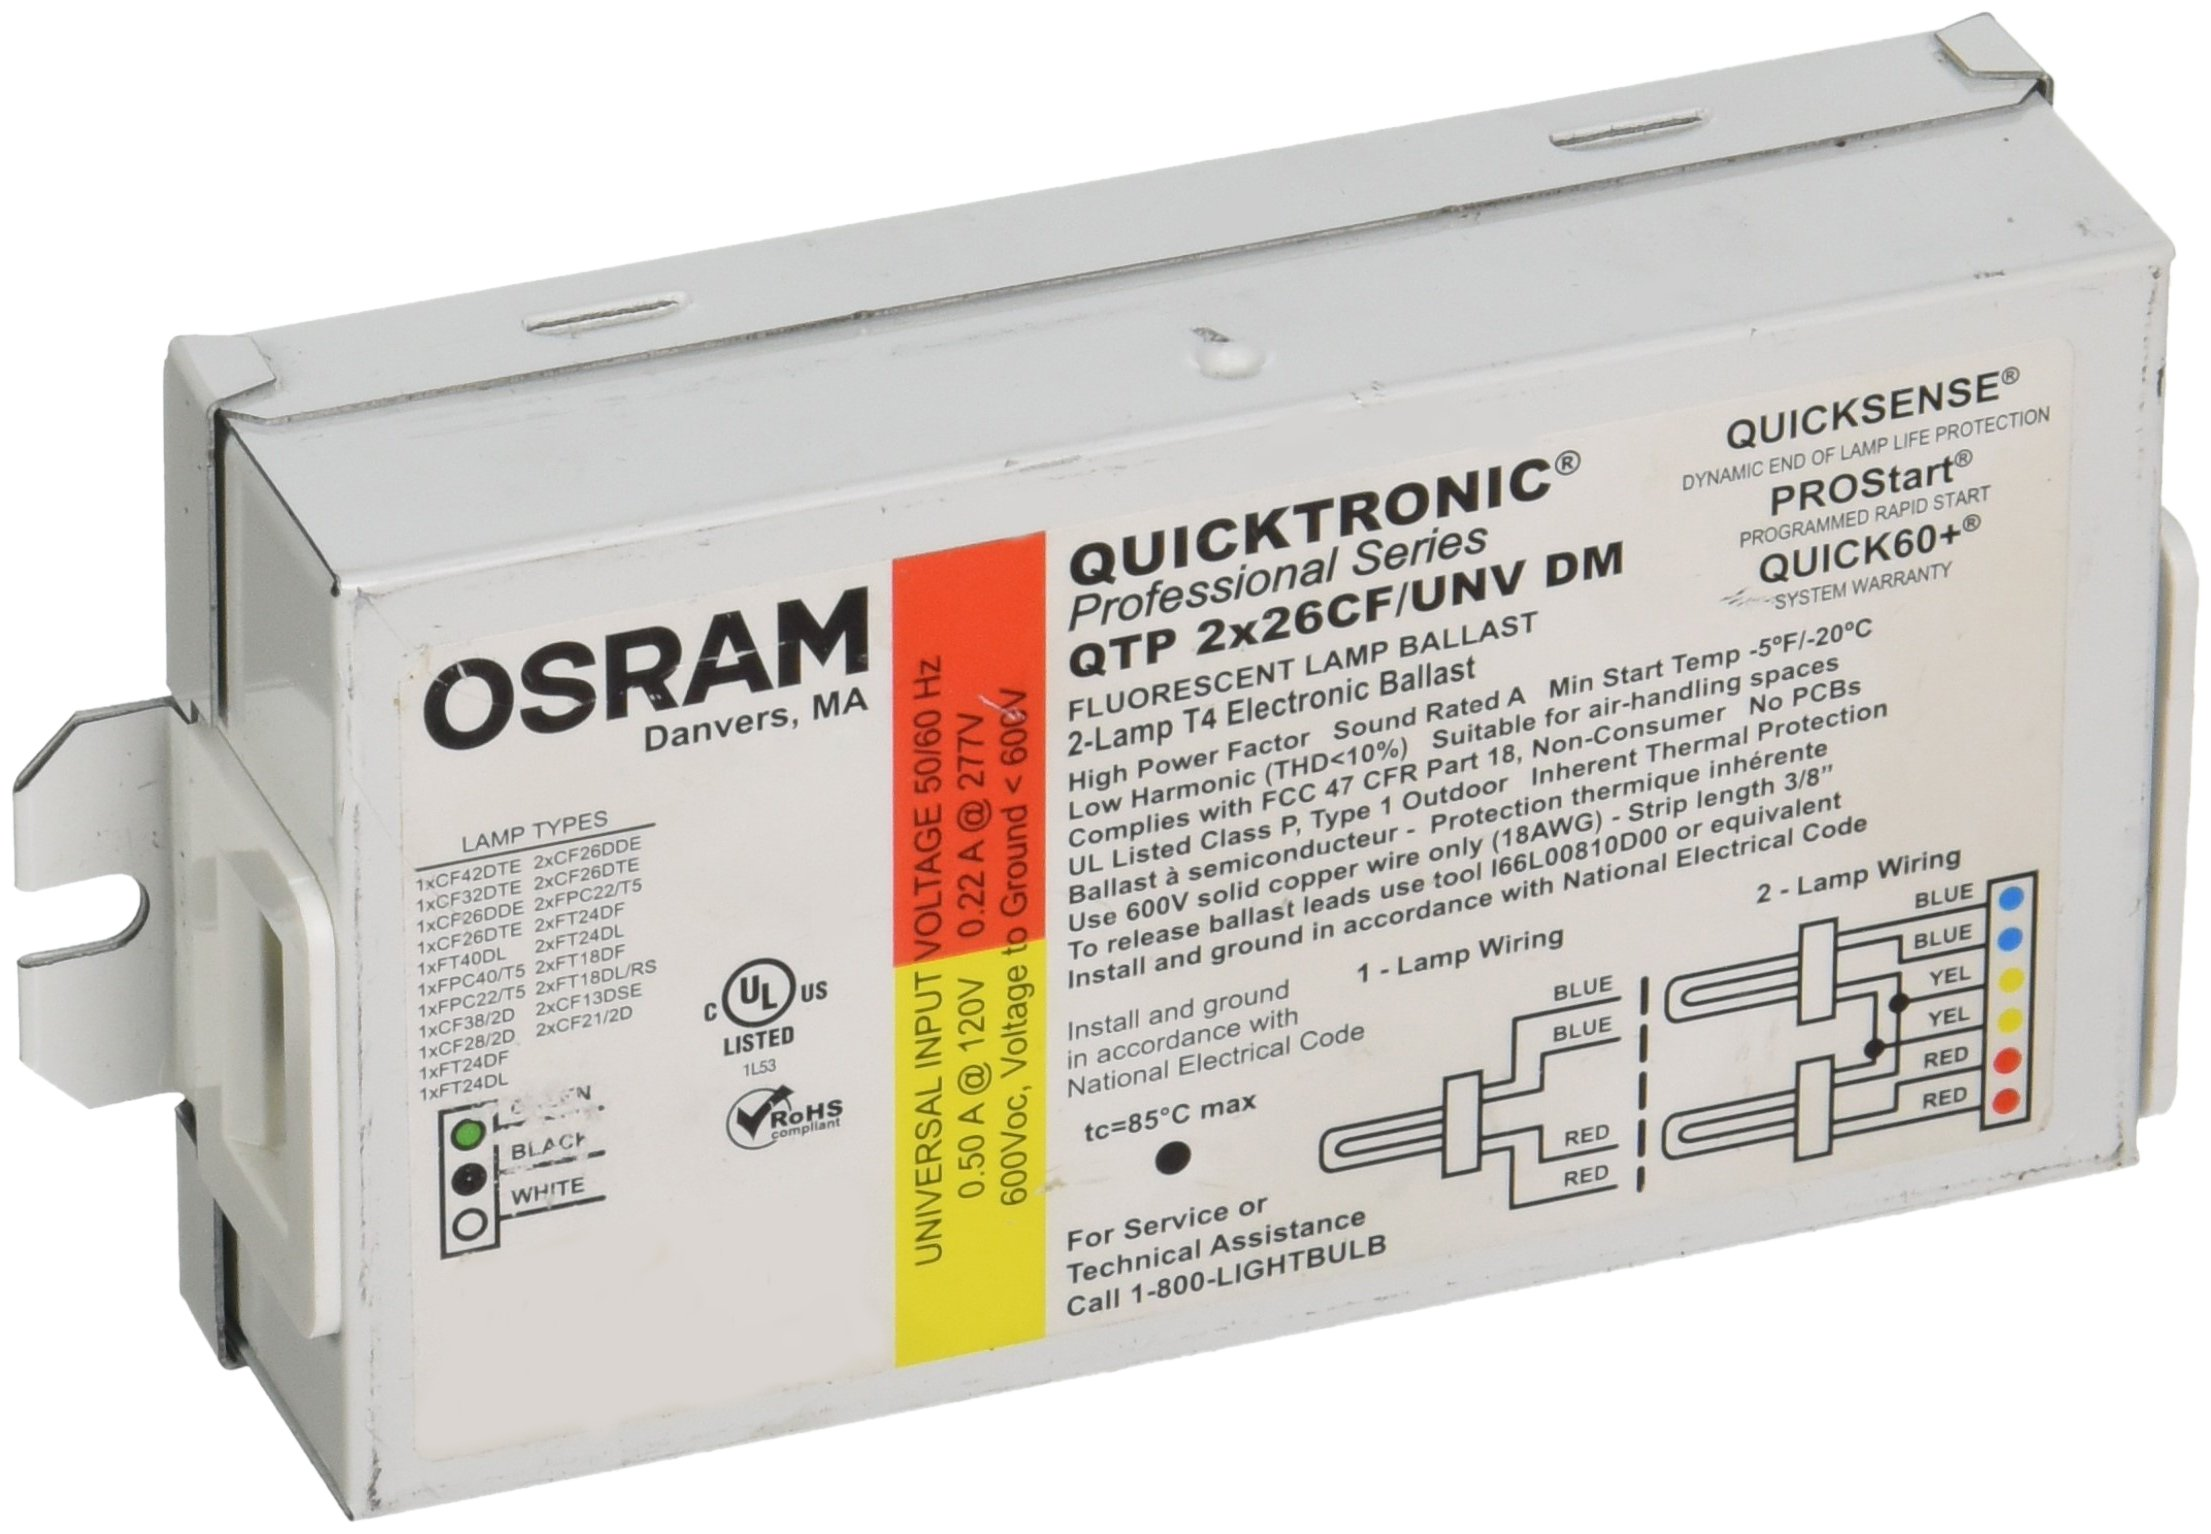 OSRAM SYLVANIA Sylvania Compact Fluorescent Ballast with Bottom Or Side Leads Qtp/2X26/Cf/Unv-645613